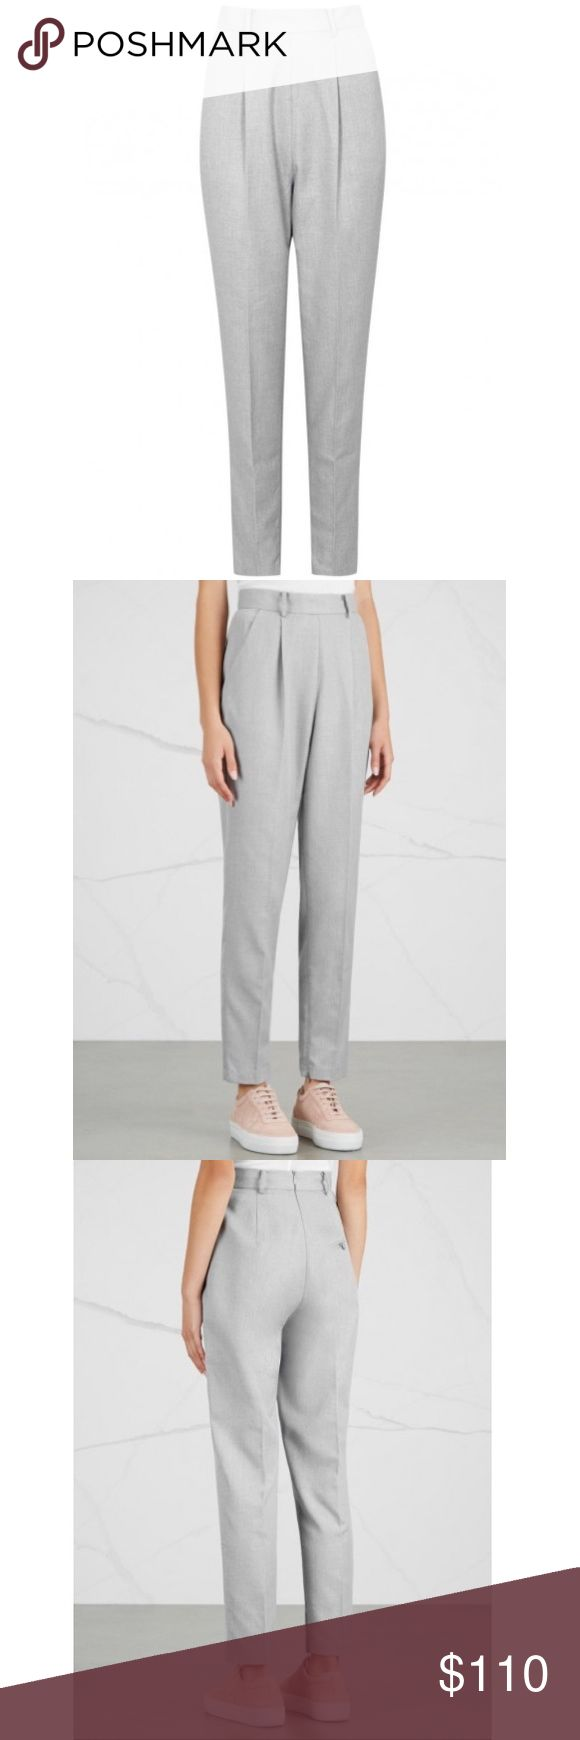 """NWT! Finders Keepers Trouser Pants I am selling these very fashionable and chic high waisted gray  Trouser slack pants by Finders Keepers, size Large. I got them on Yoox for $121 plus tax and shipping. Retail for $150 on other websites. The waist fits me (a little loose) but the butt/thigh area are loose and I think would fit someone better who has a booty and thicker legs. Waist is 15"""" across. Very pretty and flattering even though they are a bit big on me. There are tiny zippers next to…"""